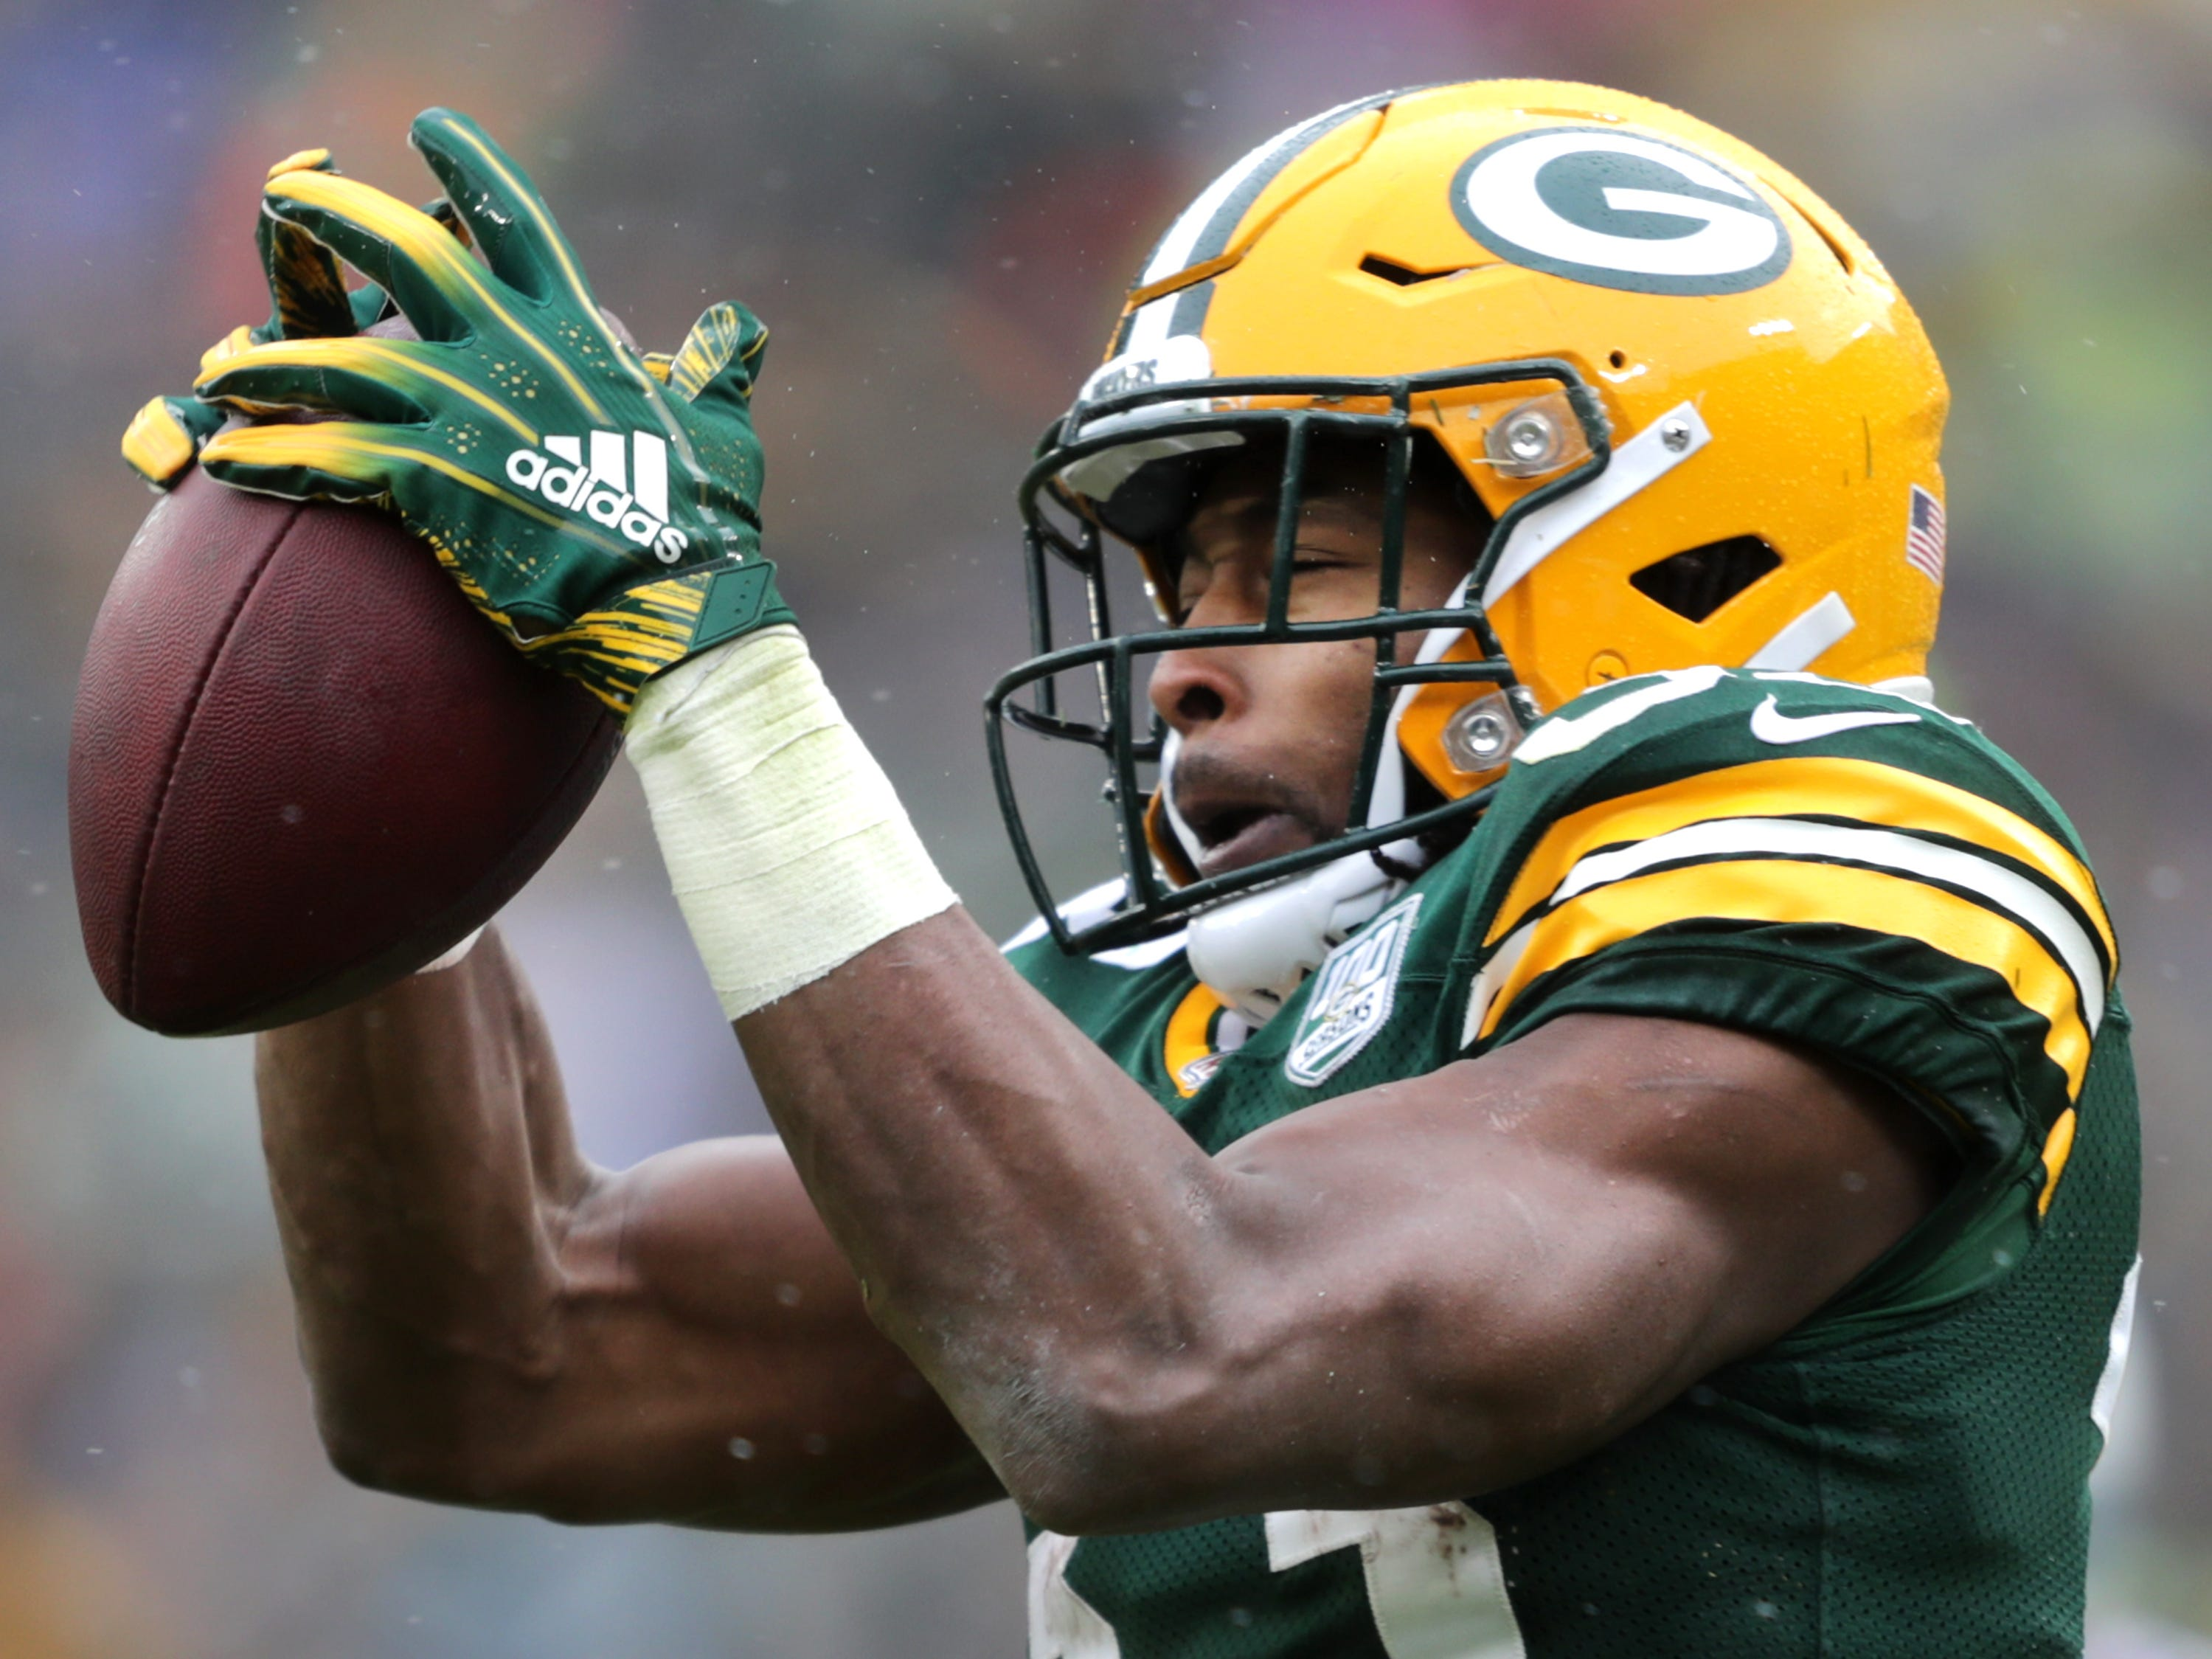 Green Bay Packers running back Aaron Jones catches a pass in the first quarter against the Arizona Cardinals during their football game on Sunday, December 2, 2018, at Lambeau Field in Green Bay, Wis. Wm. Glasheen/USA TODAY NETWORK-Wisconsin.